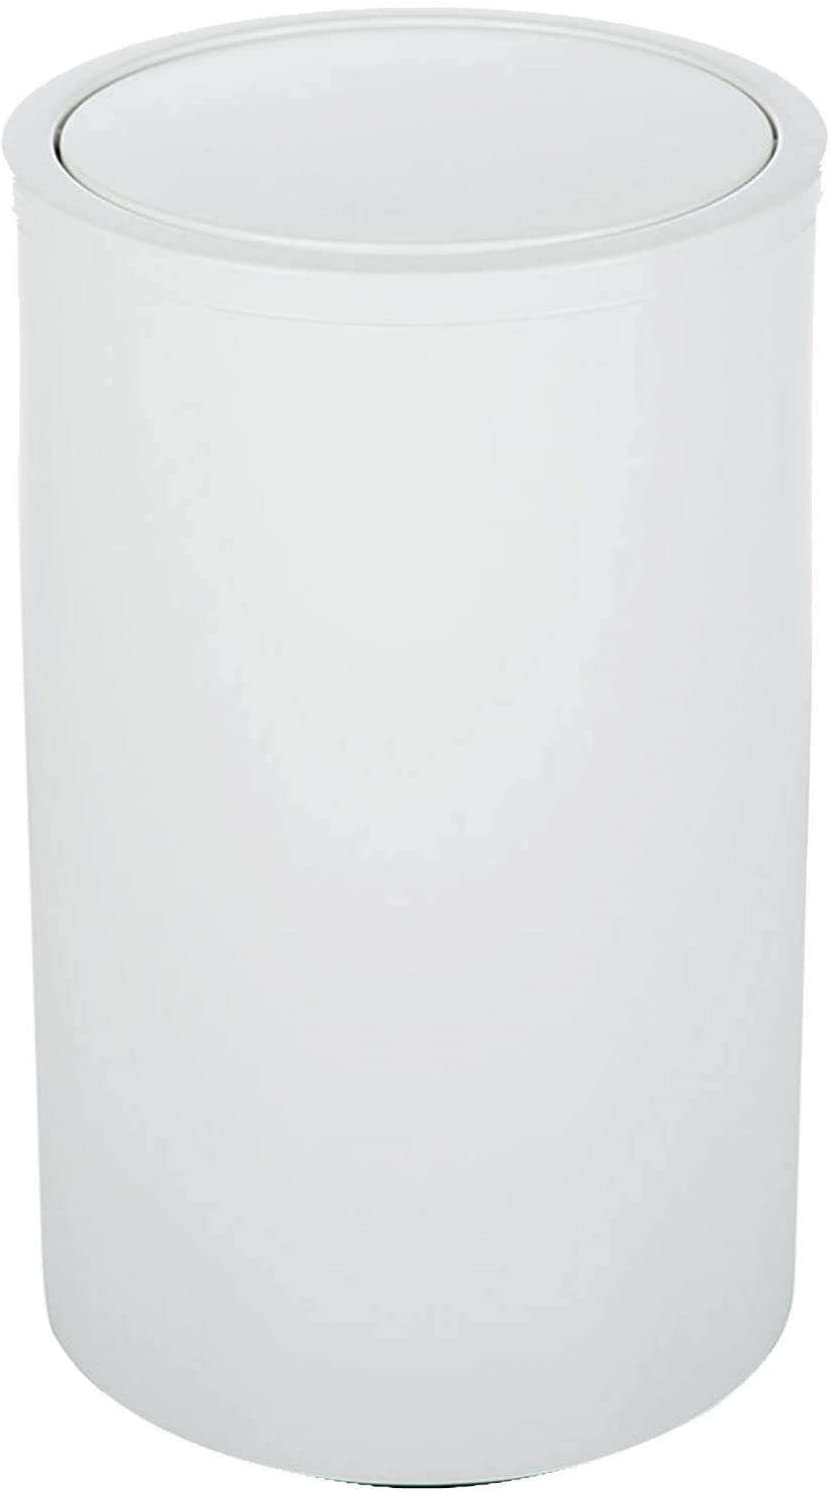 Decor Walther Dw 121 Round Laundry Bin With Swing Lid Matt White Amazon Co Uk Kitchen Home